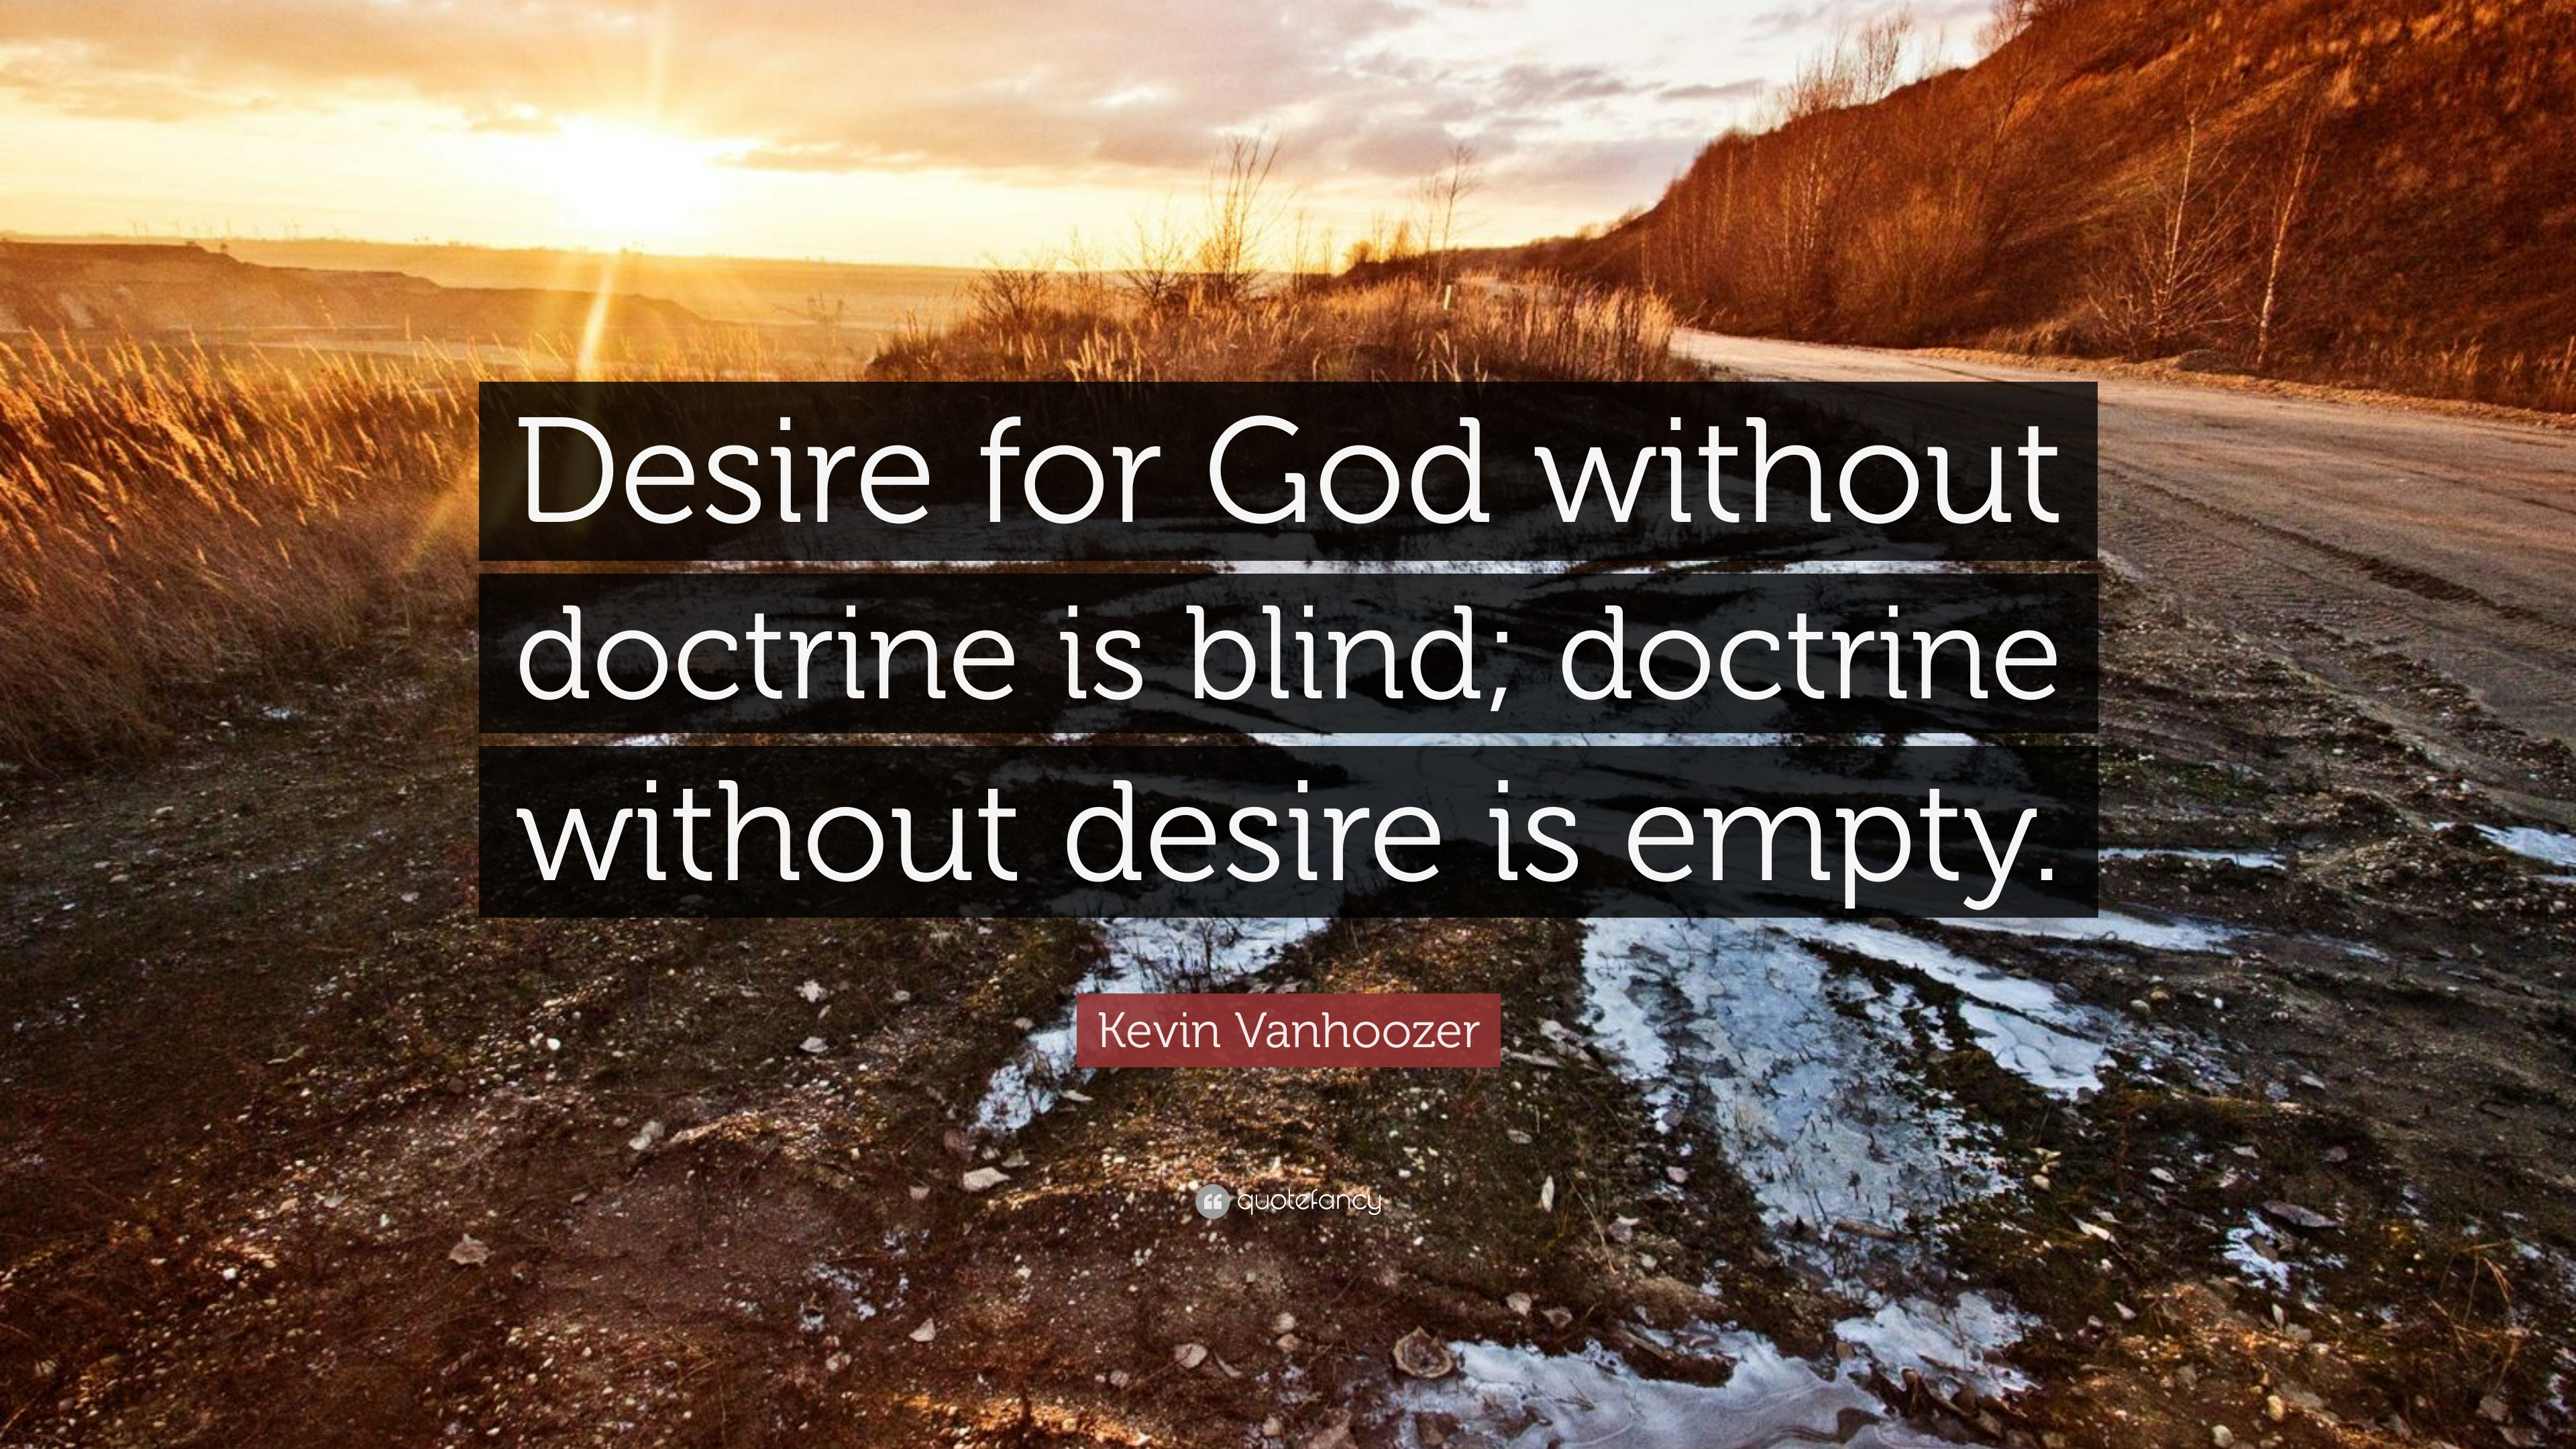 god and chases ambition blindly essay The duty of the christian in this time of crisis is to strive with all our power and intelligence, with our faith and hope in christ, and love for god and humanity, to do the one task which god.